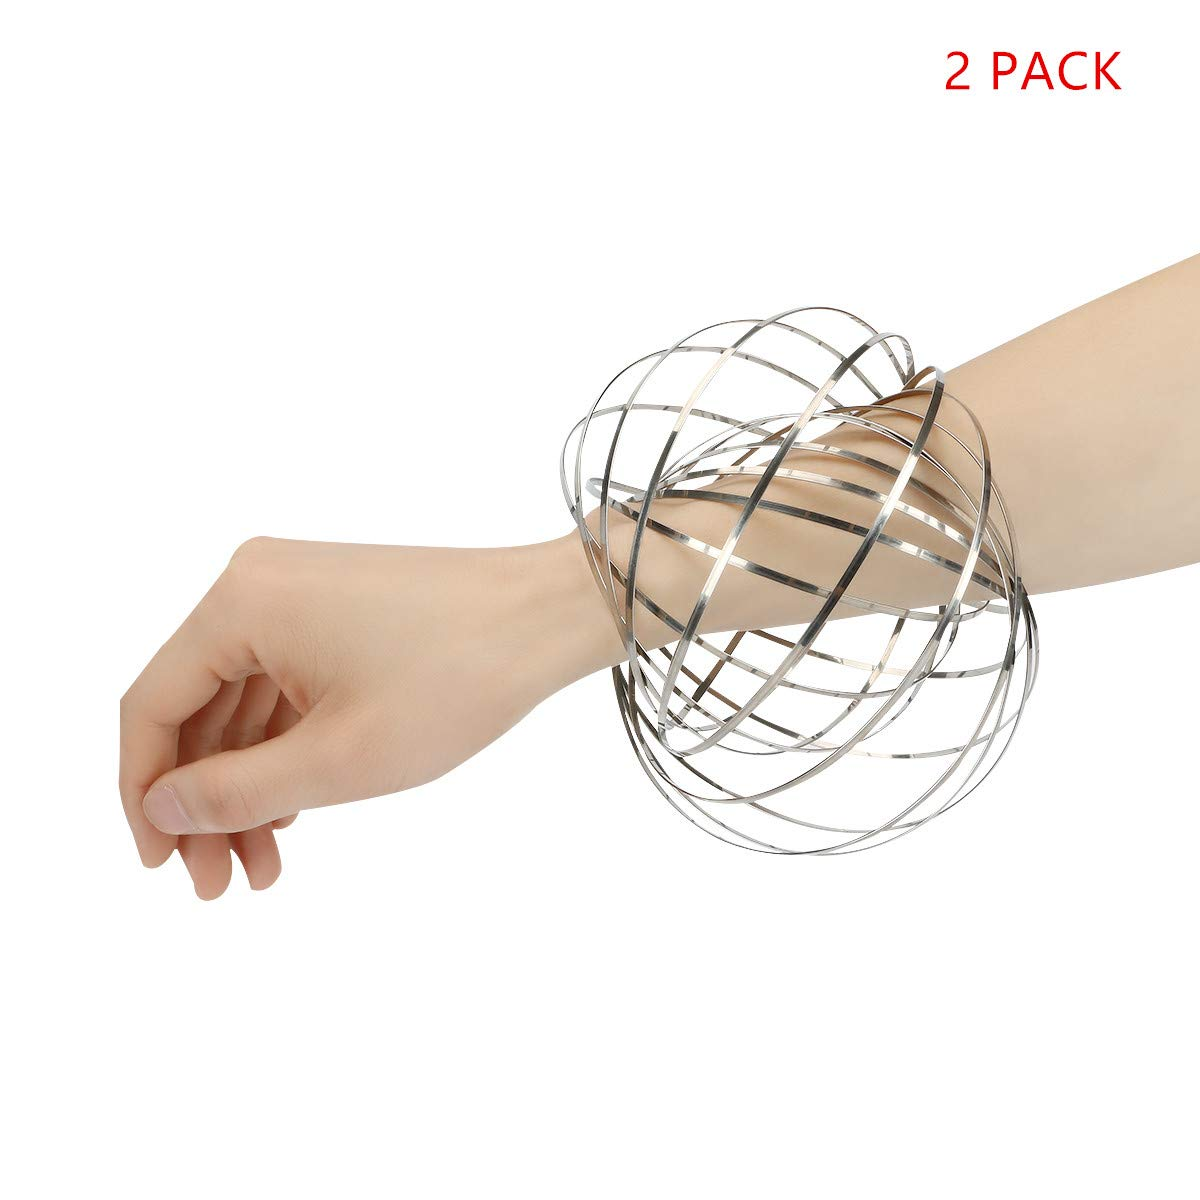 Flow Ring Toy, Kinetic Educational Spring Toy with Multi-Sensory, Interactive, 3D-Shaped Flow Ring ,2 Packs,Sliver